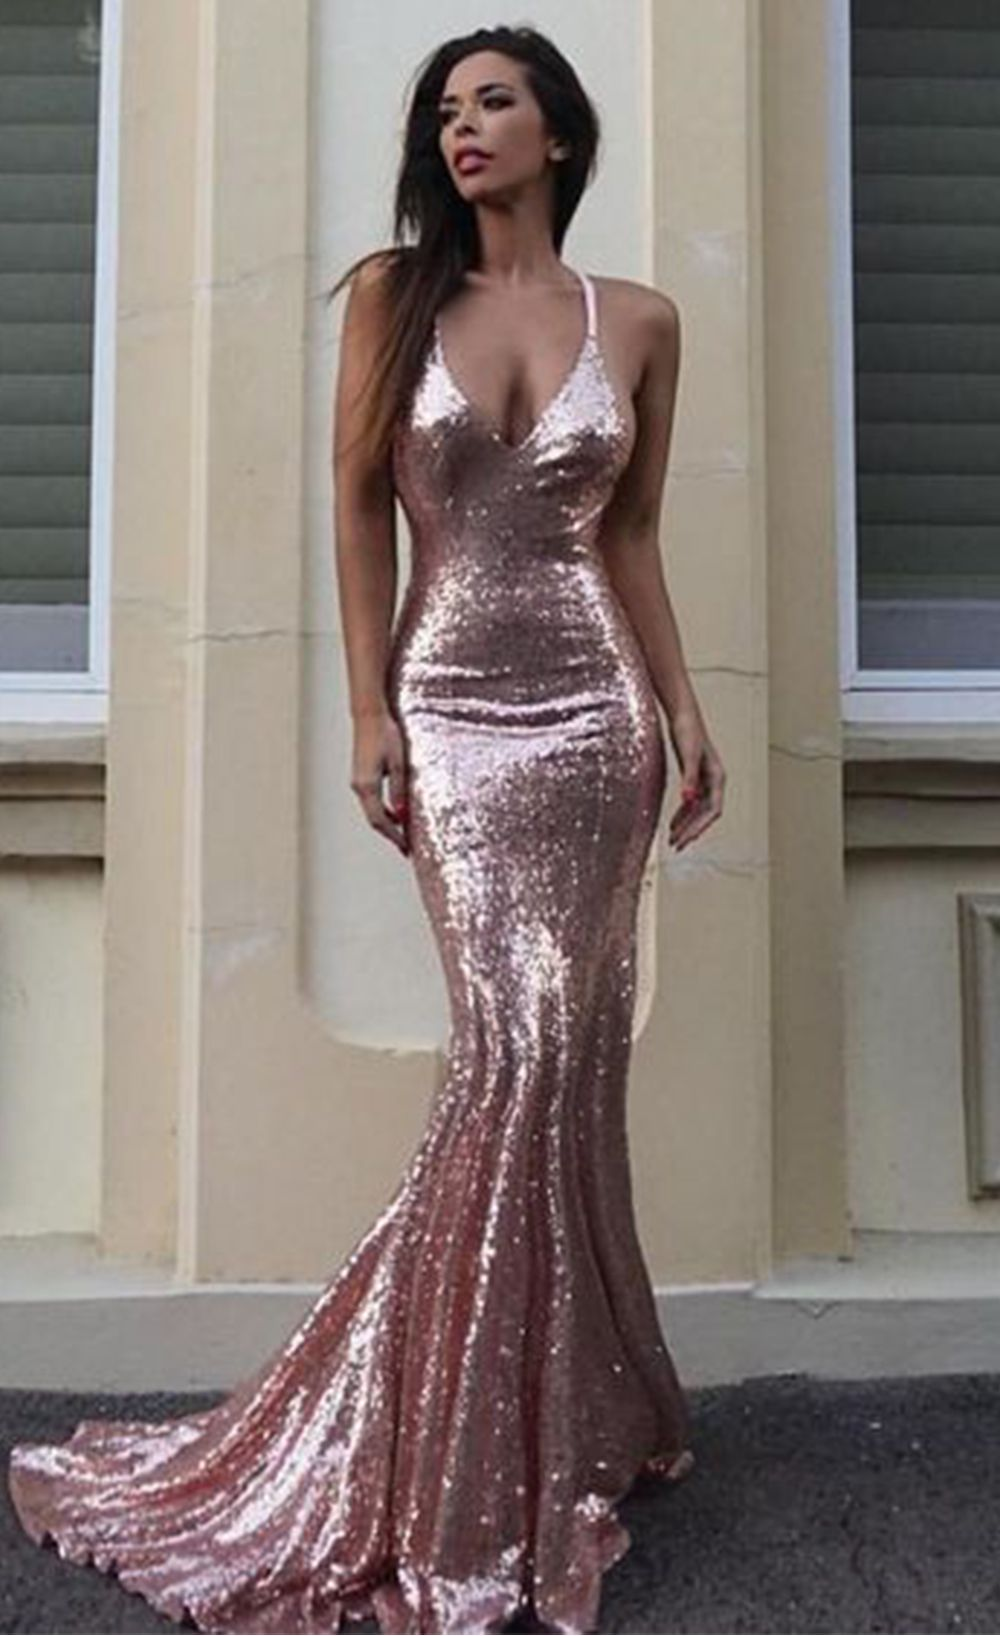 89.99 Sexy Halter V-neck Party Sequin Maxi Dress  3703a6acefd4